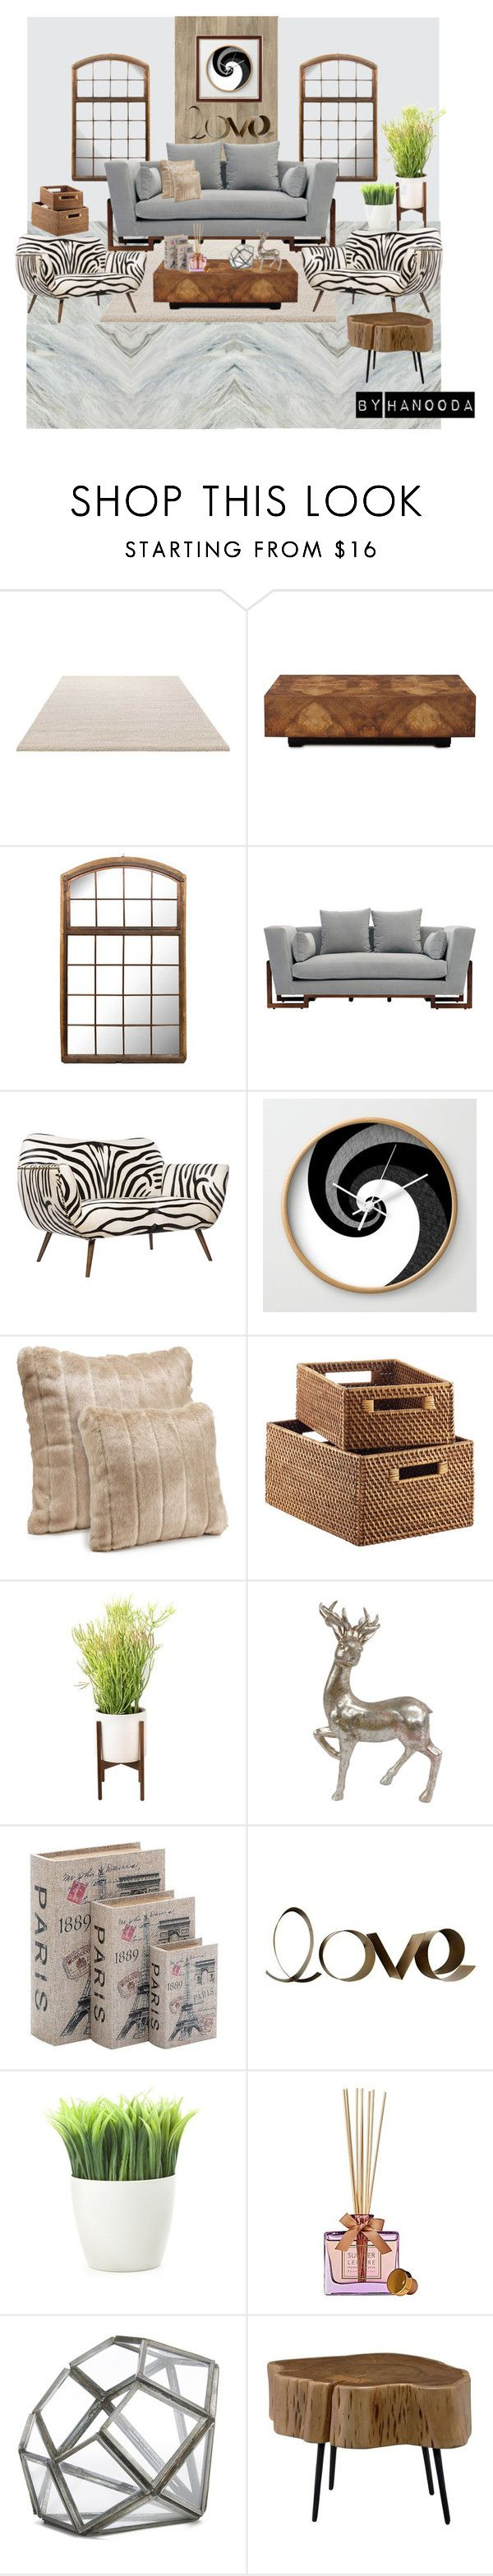 Modern deco by hanooda21 on Polyvore featuring interior, interiors, interior design, home, home decor, interior decorating, artless, Emporium Home, John-Richard and Moe's Home Collection